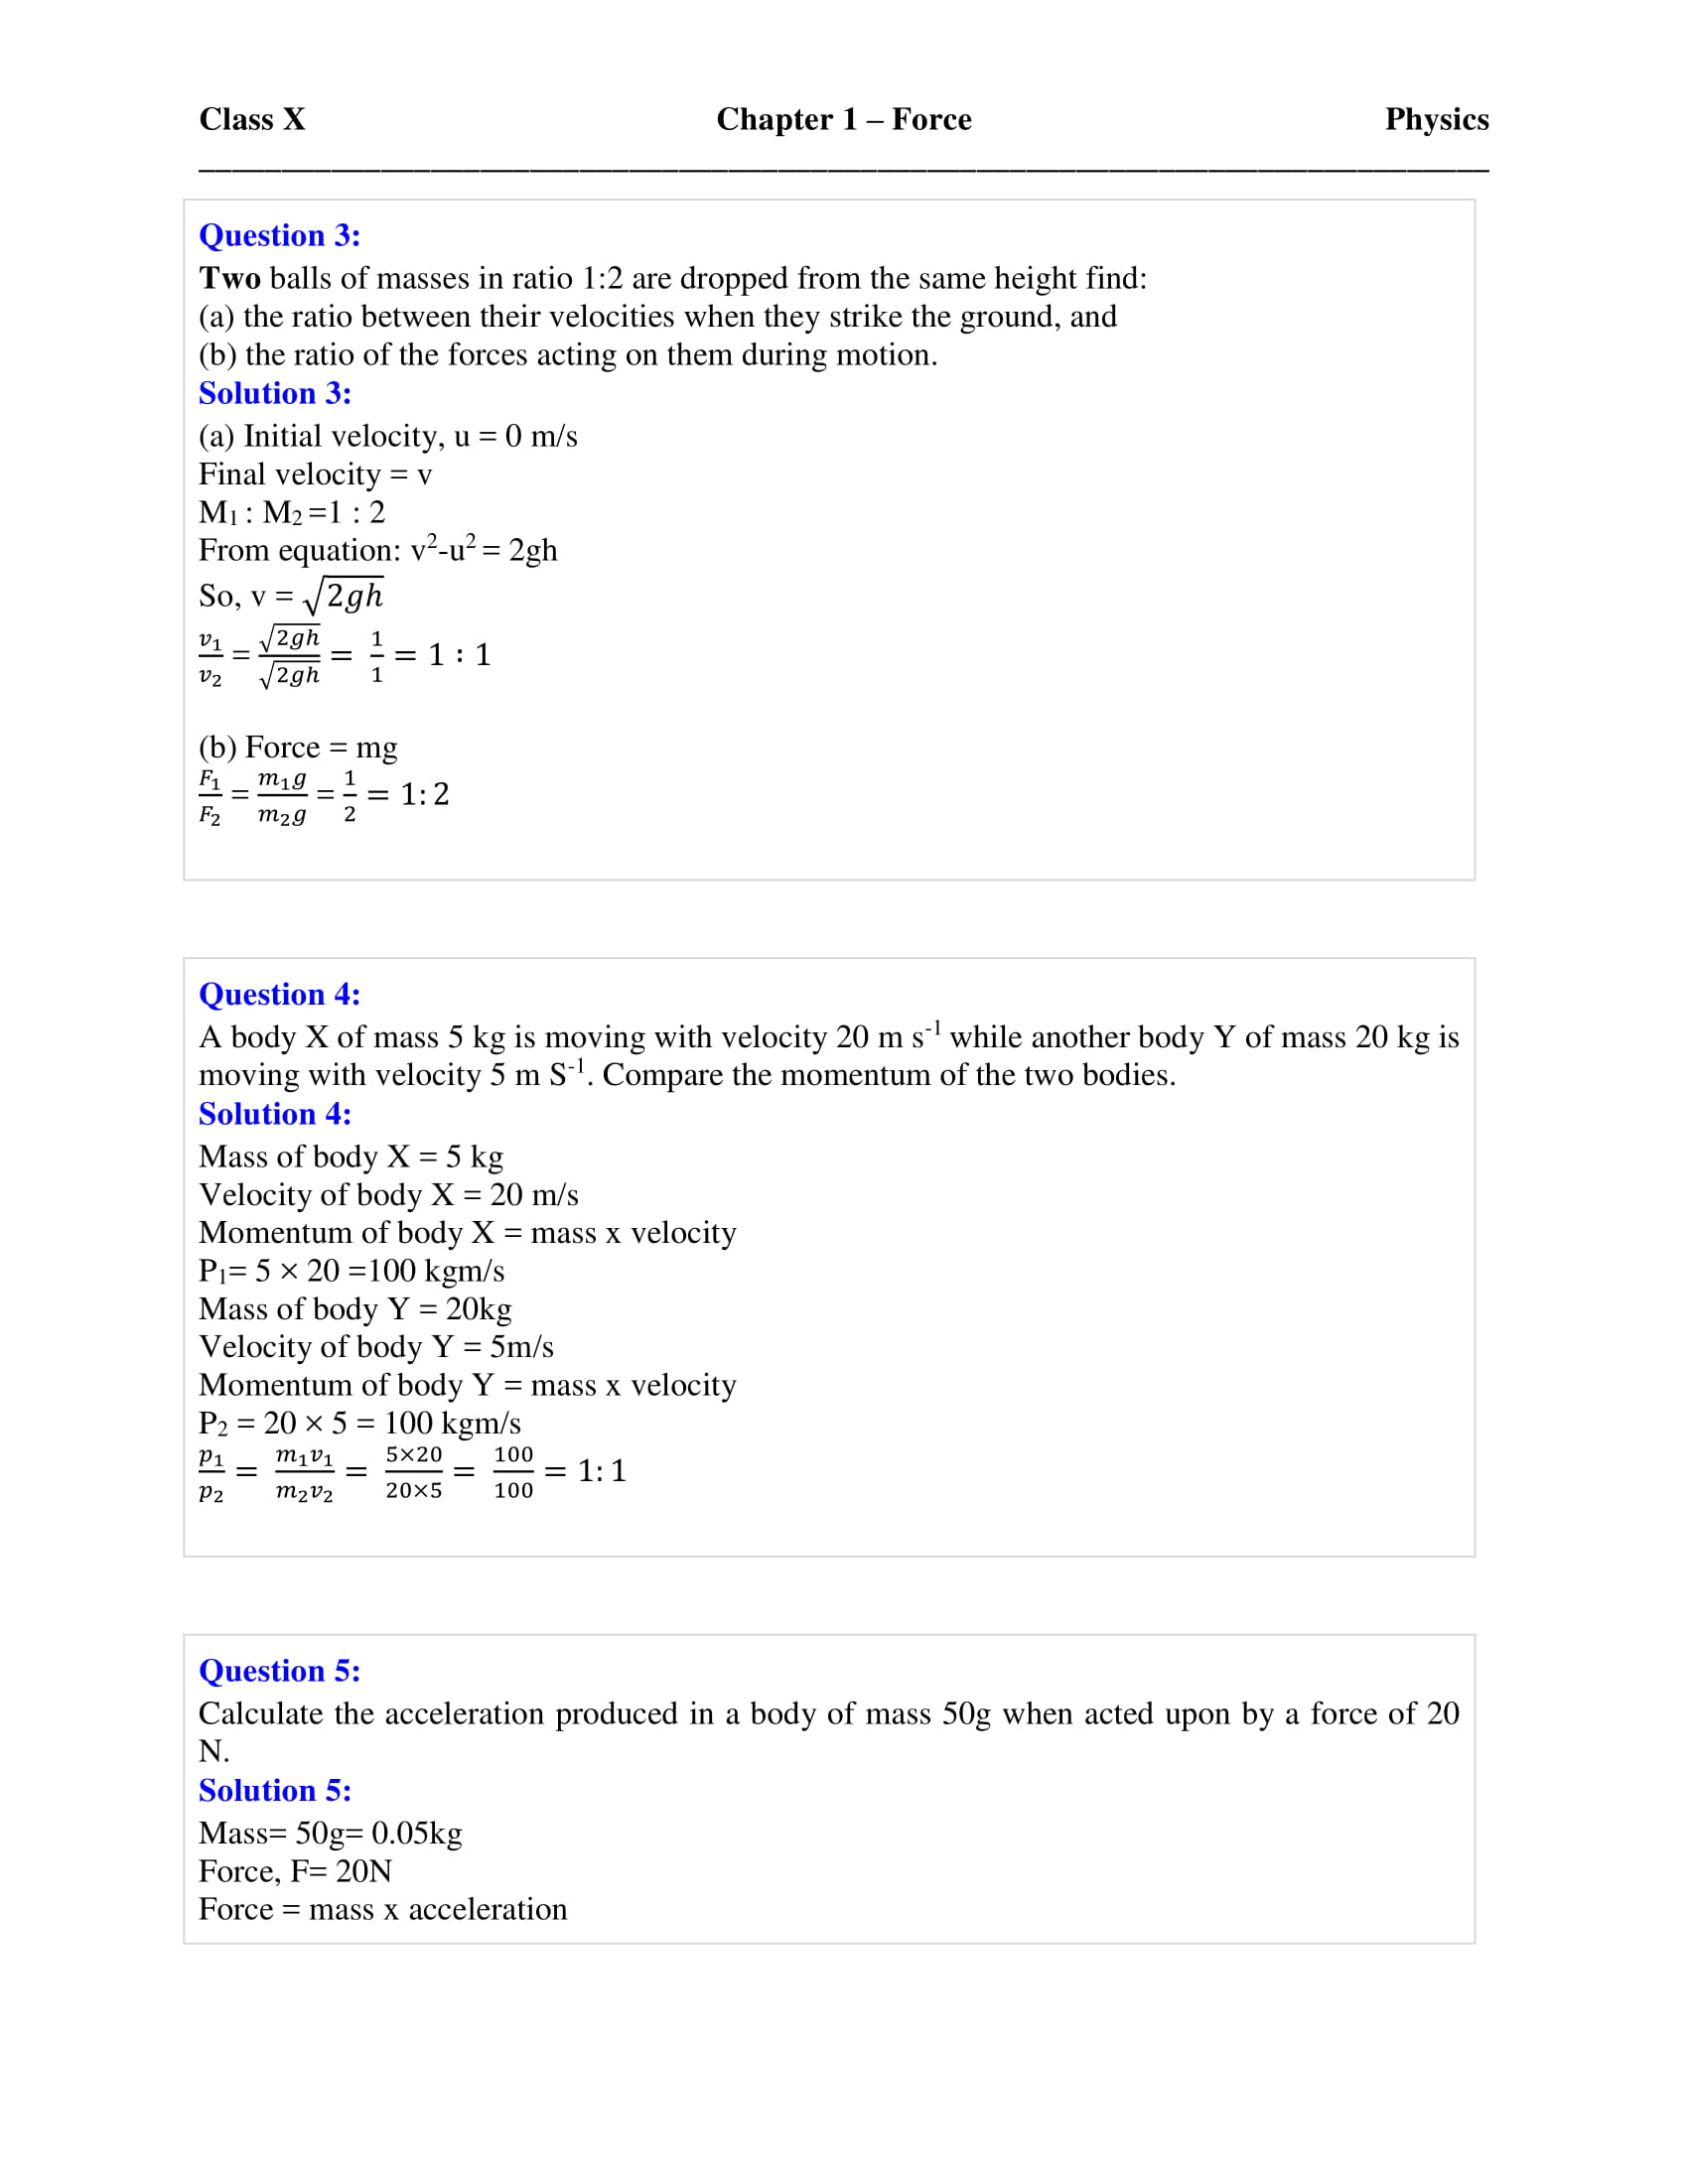 icse-selina-physics-solutions-class-10-chapter-1-force-10